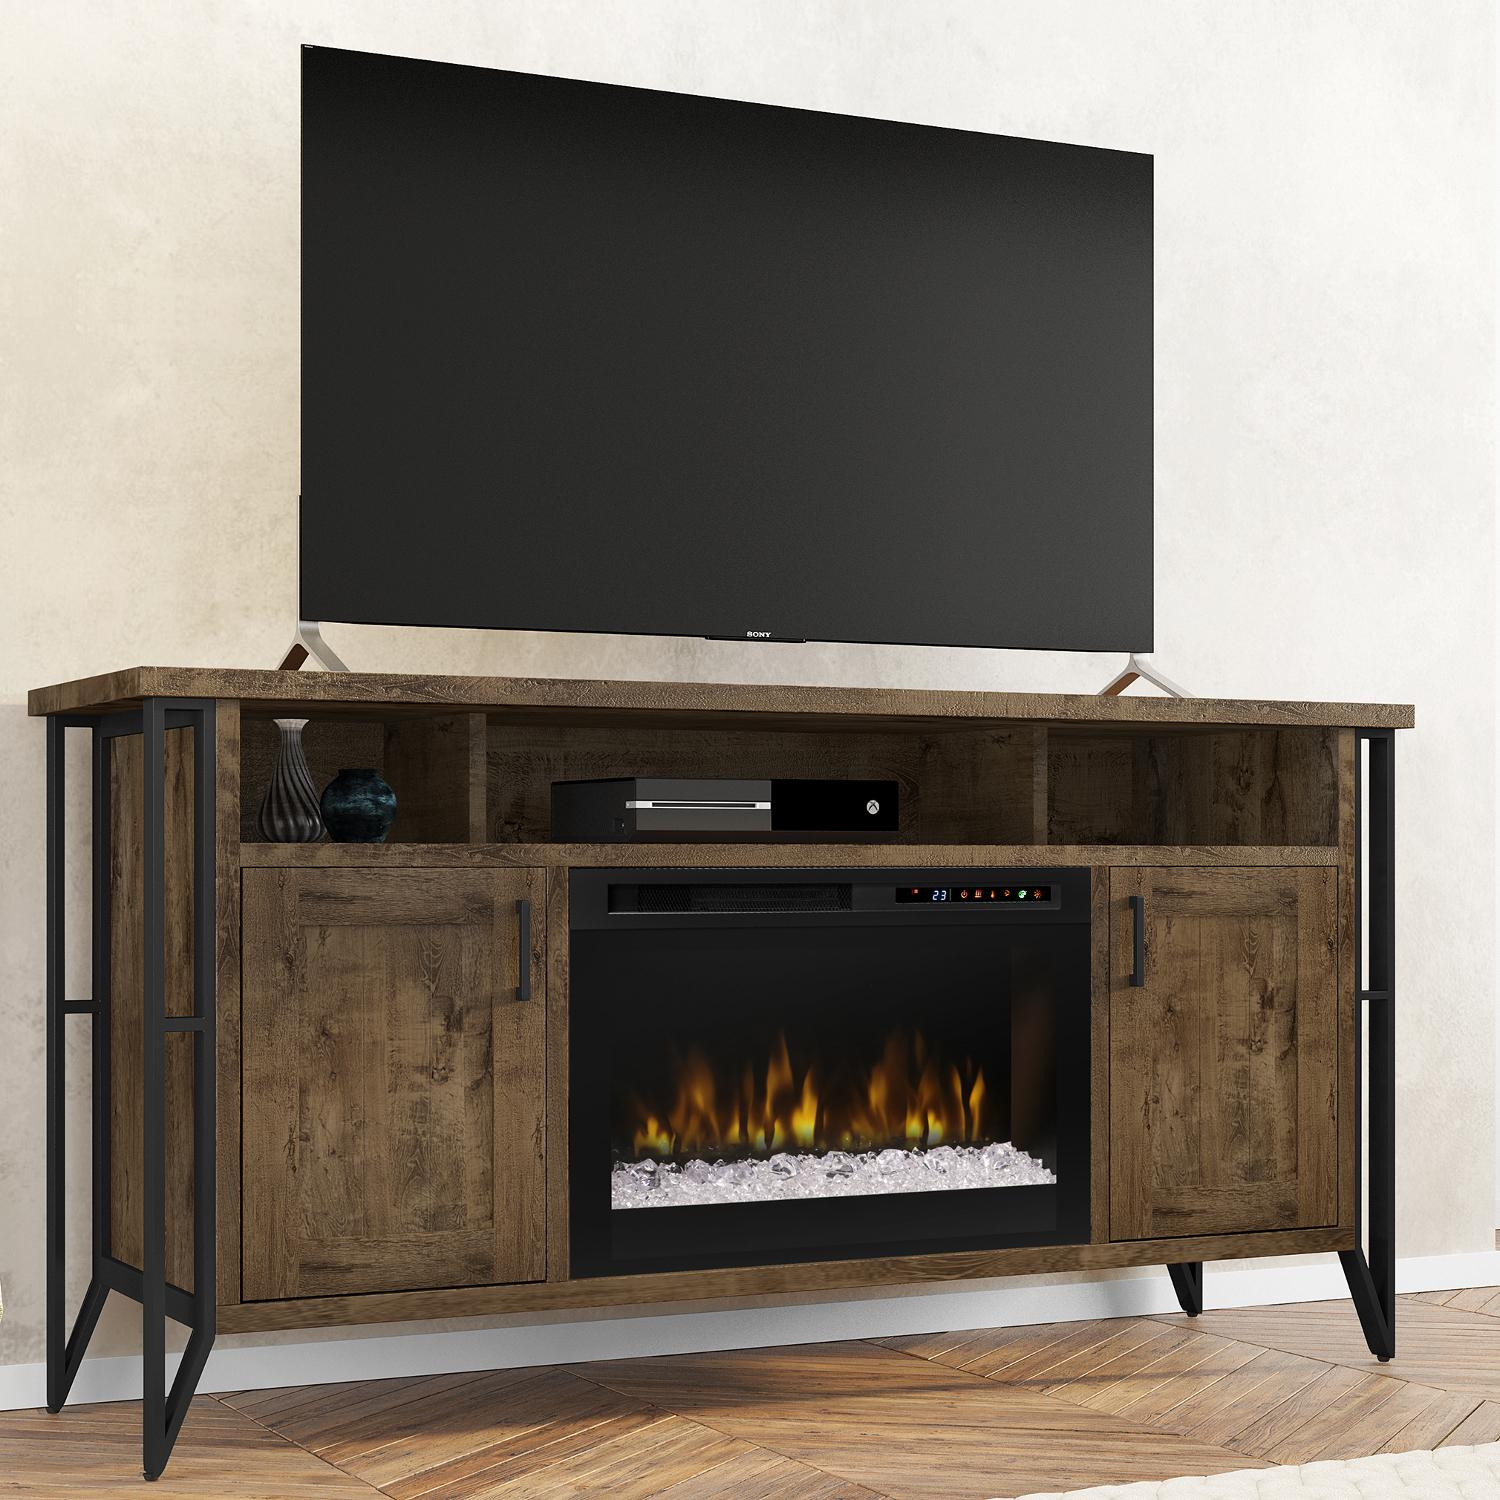 Dimplex Multi-Fire XHD Tyson 64-Inch Electric Fireplace M...